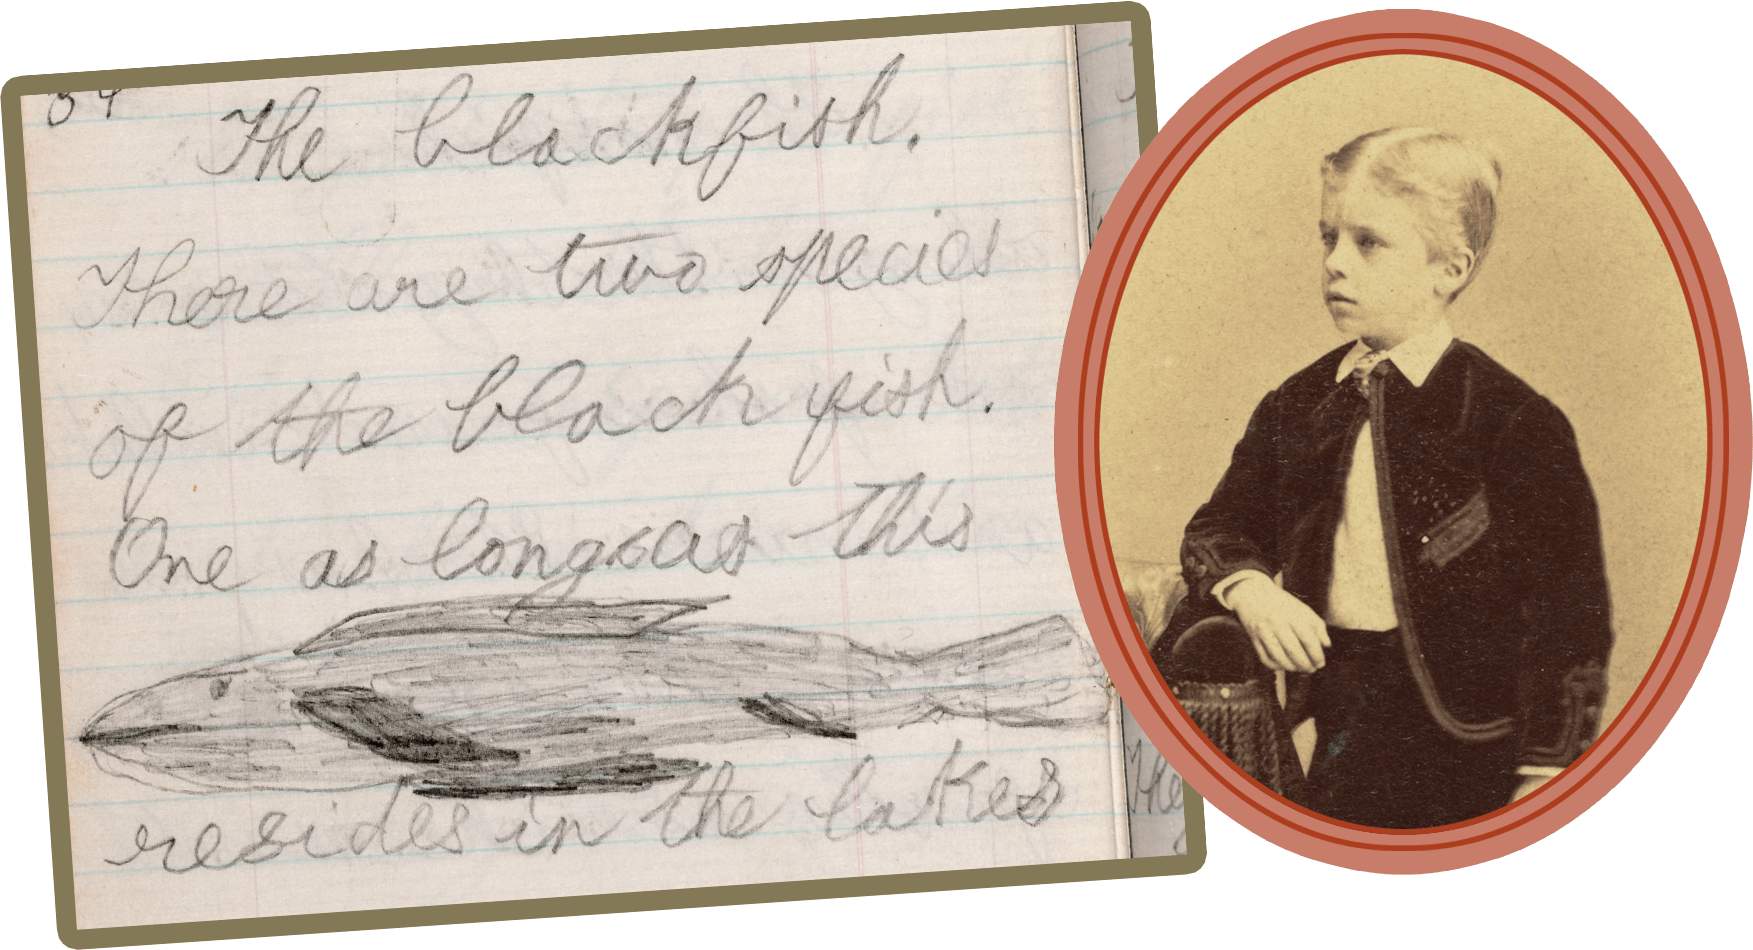 Portrait of young TR, alongside a page from his journal showing a drawing and notes about the blackfish.